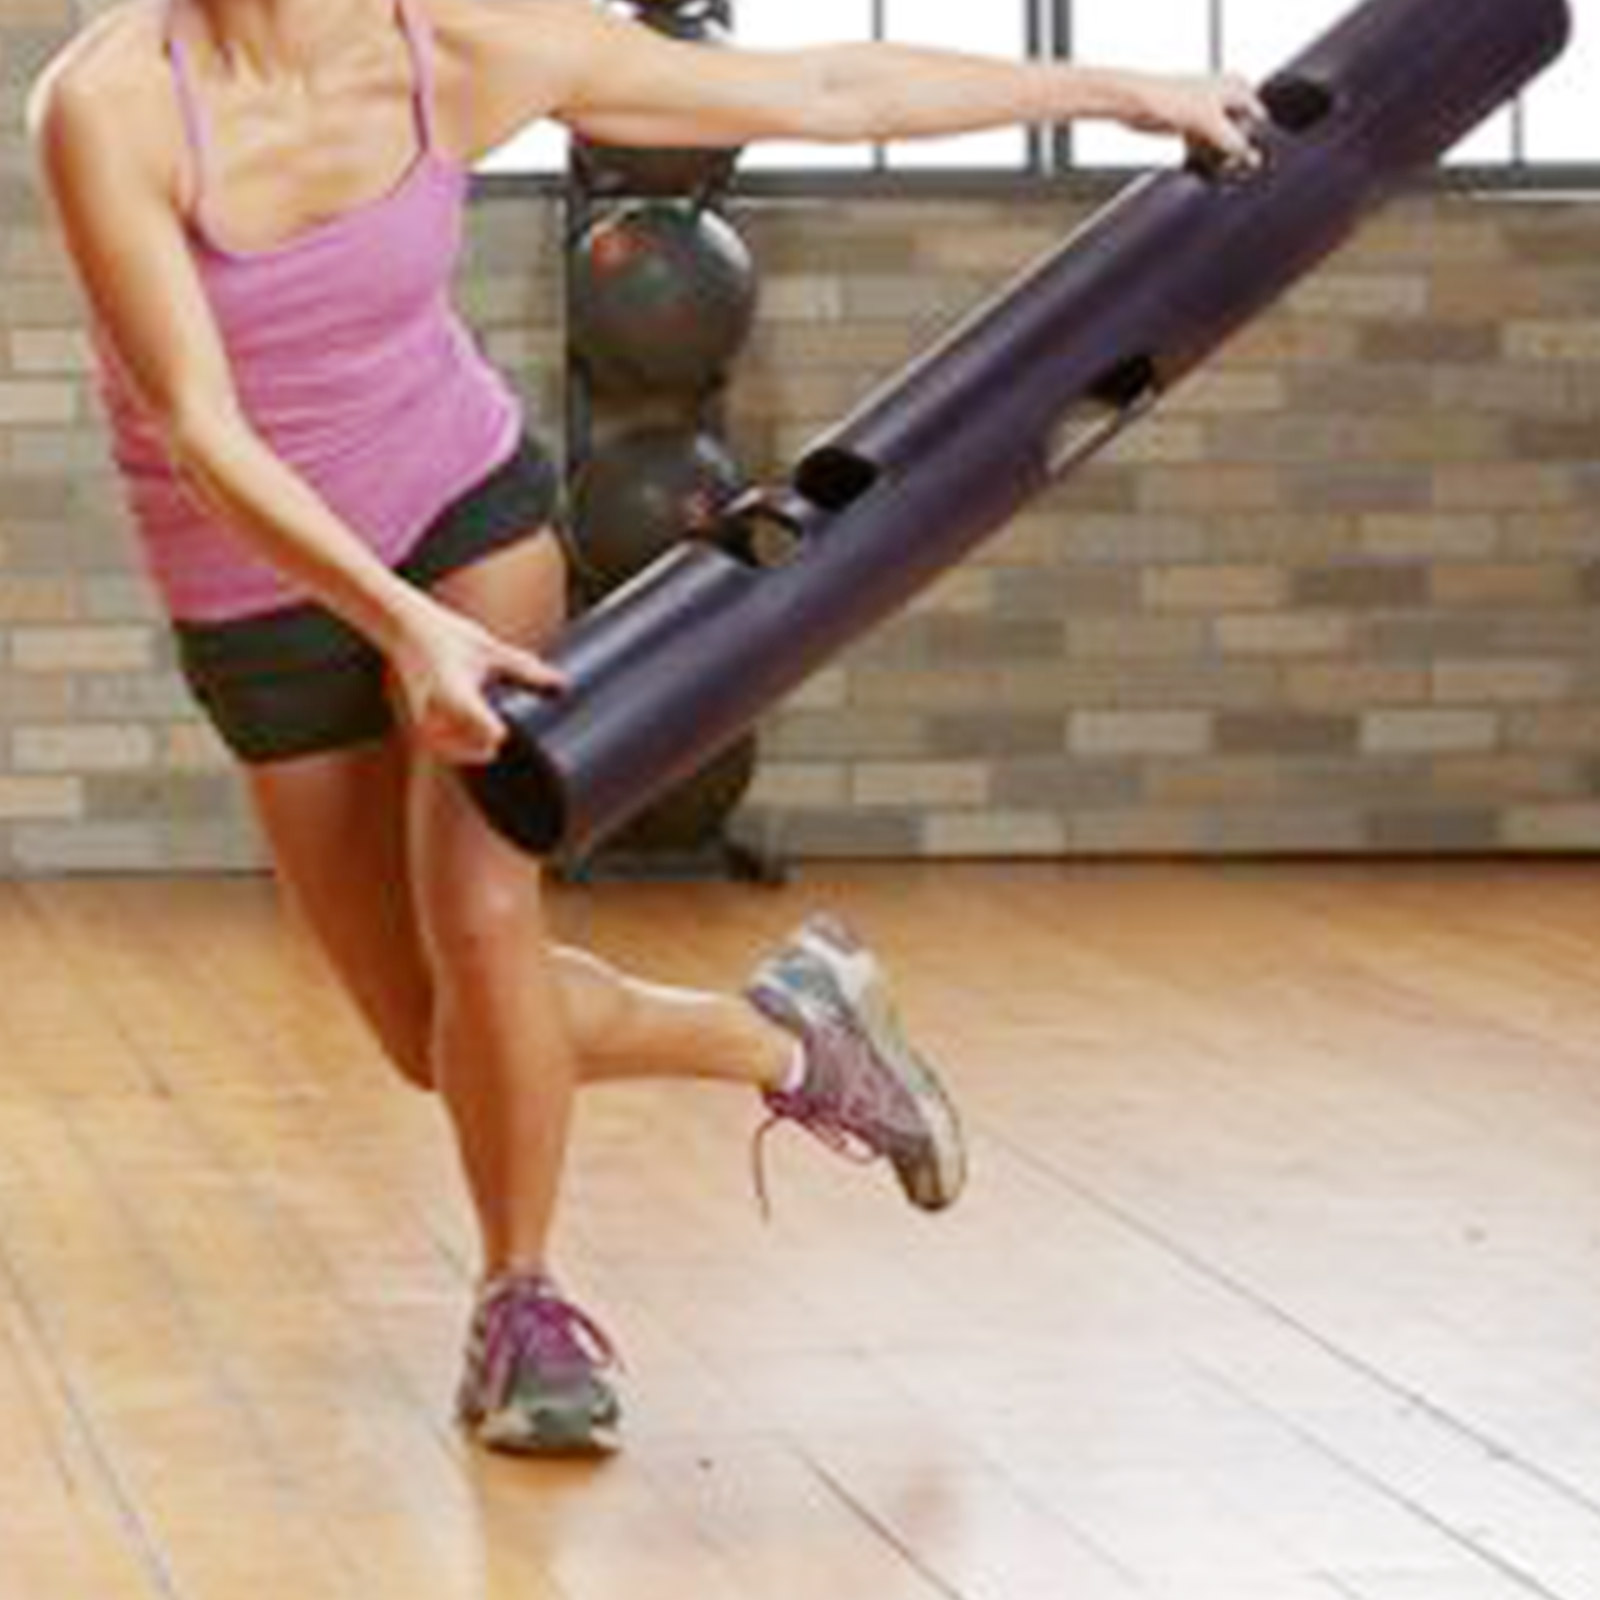 Vipr-Fitpro-Fitness-Tube-Loaded-Movement-Training-weightlifting-4-6-8-10-12-Kg thumbnail 24